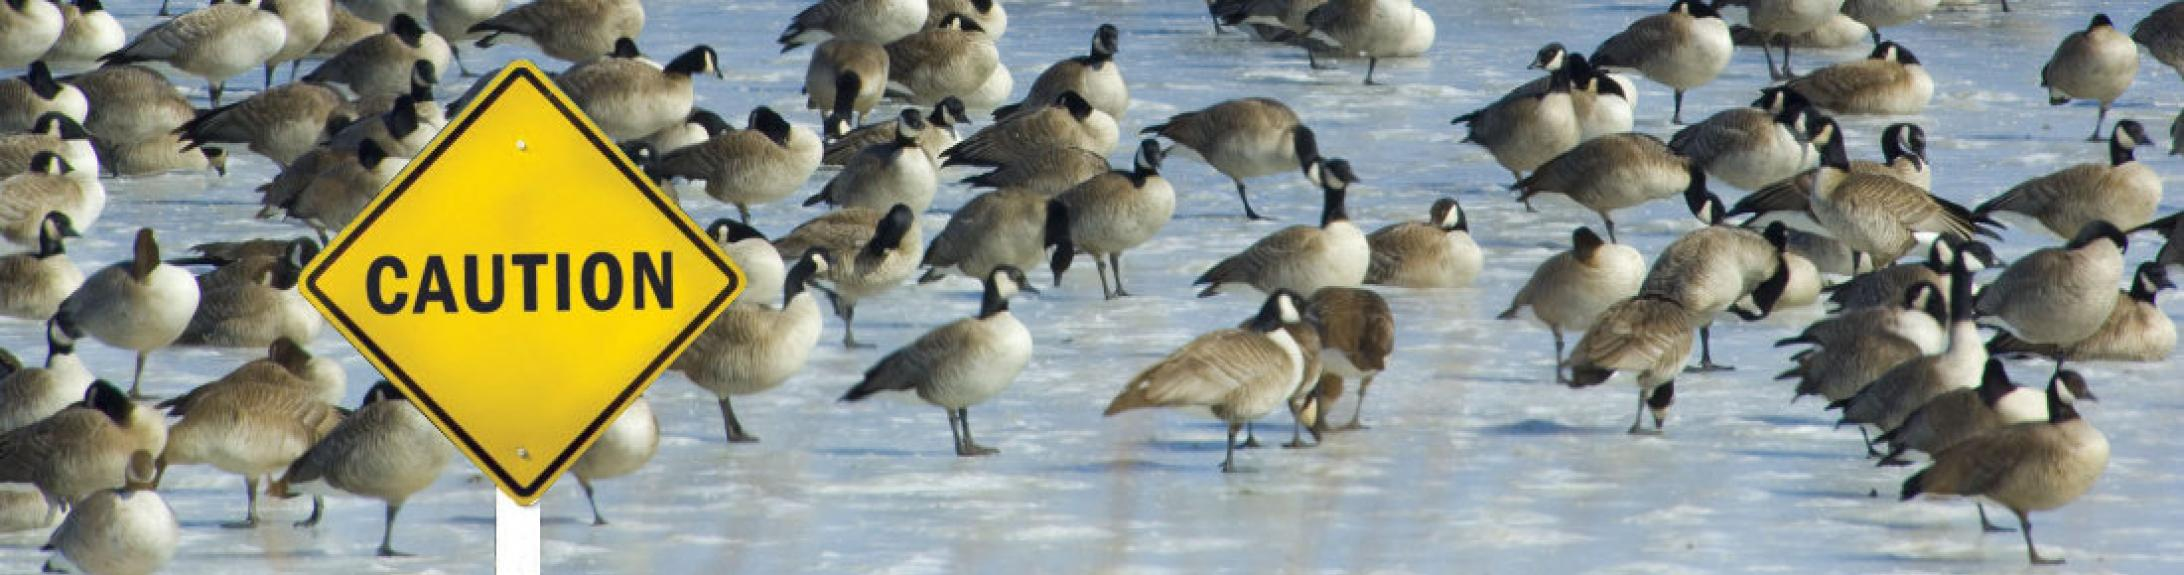 Geese on ice with sign saying caution